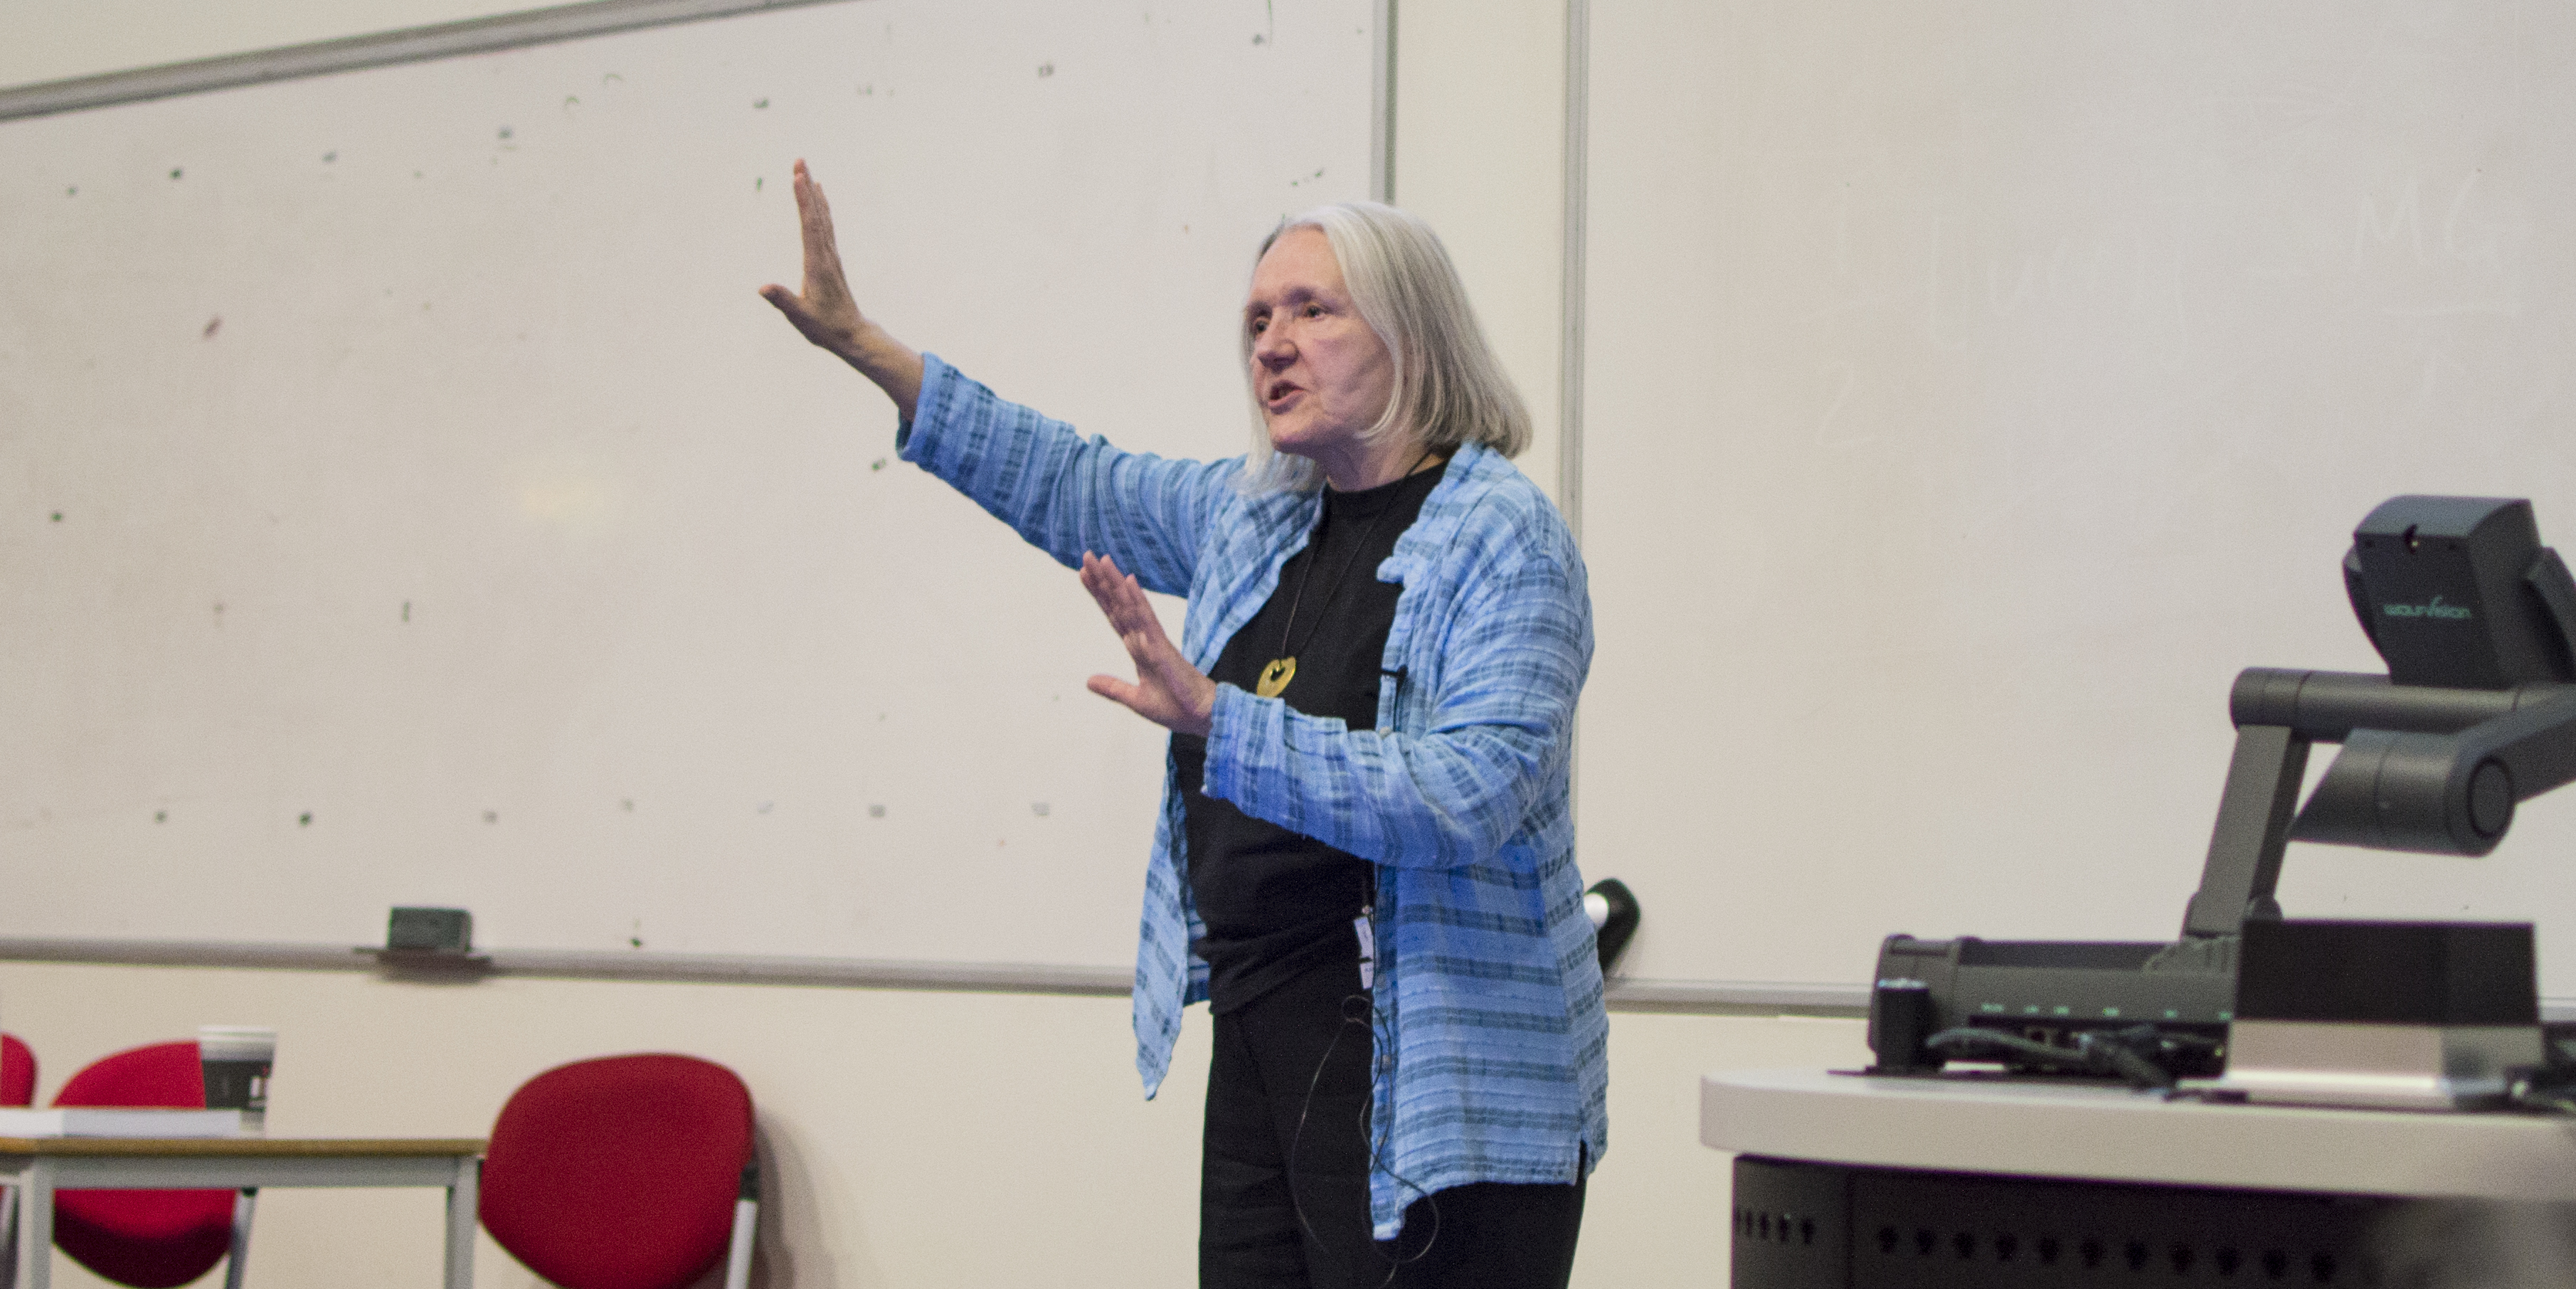 saskia sassen global city thesis Saskia sassen's research and writing focuses on globalization (including social,  economic and political dimensions), immigration, global cities (including cities   that comprise her 20 years of research, sassen starts with a thesis that posits the .